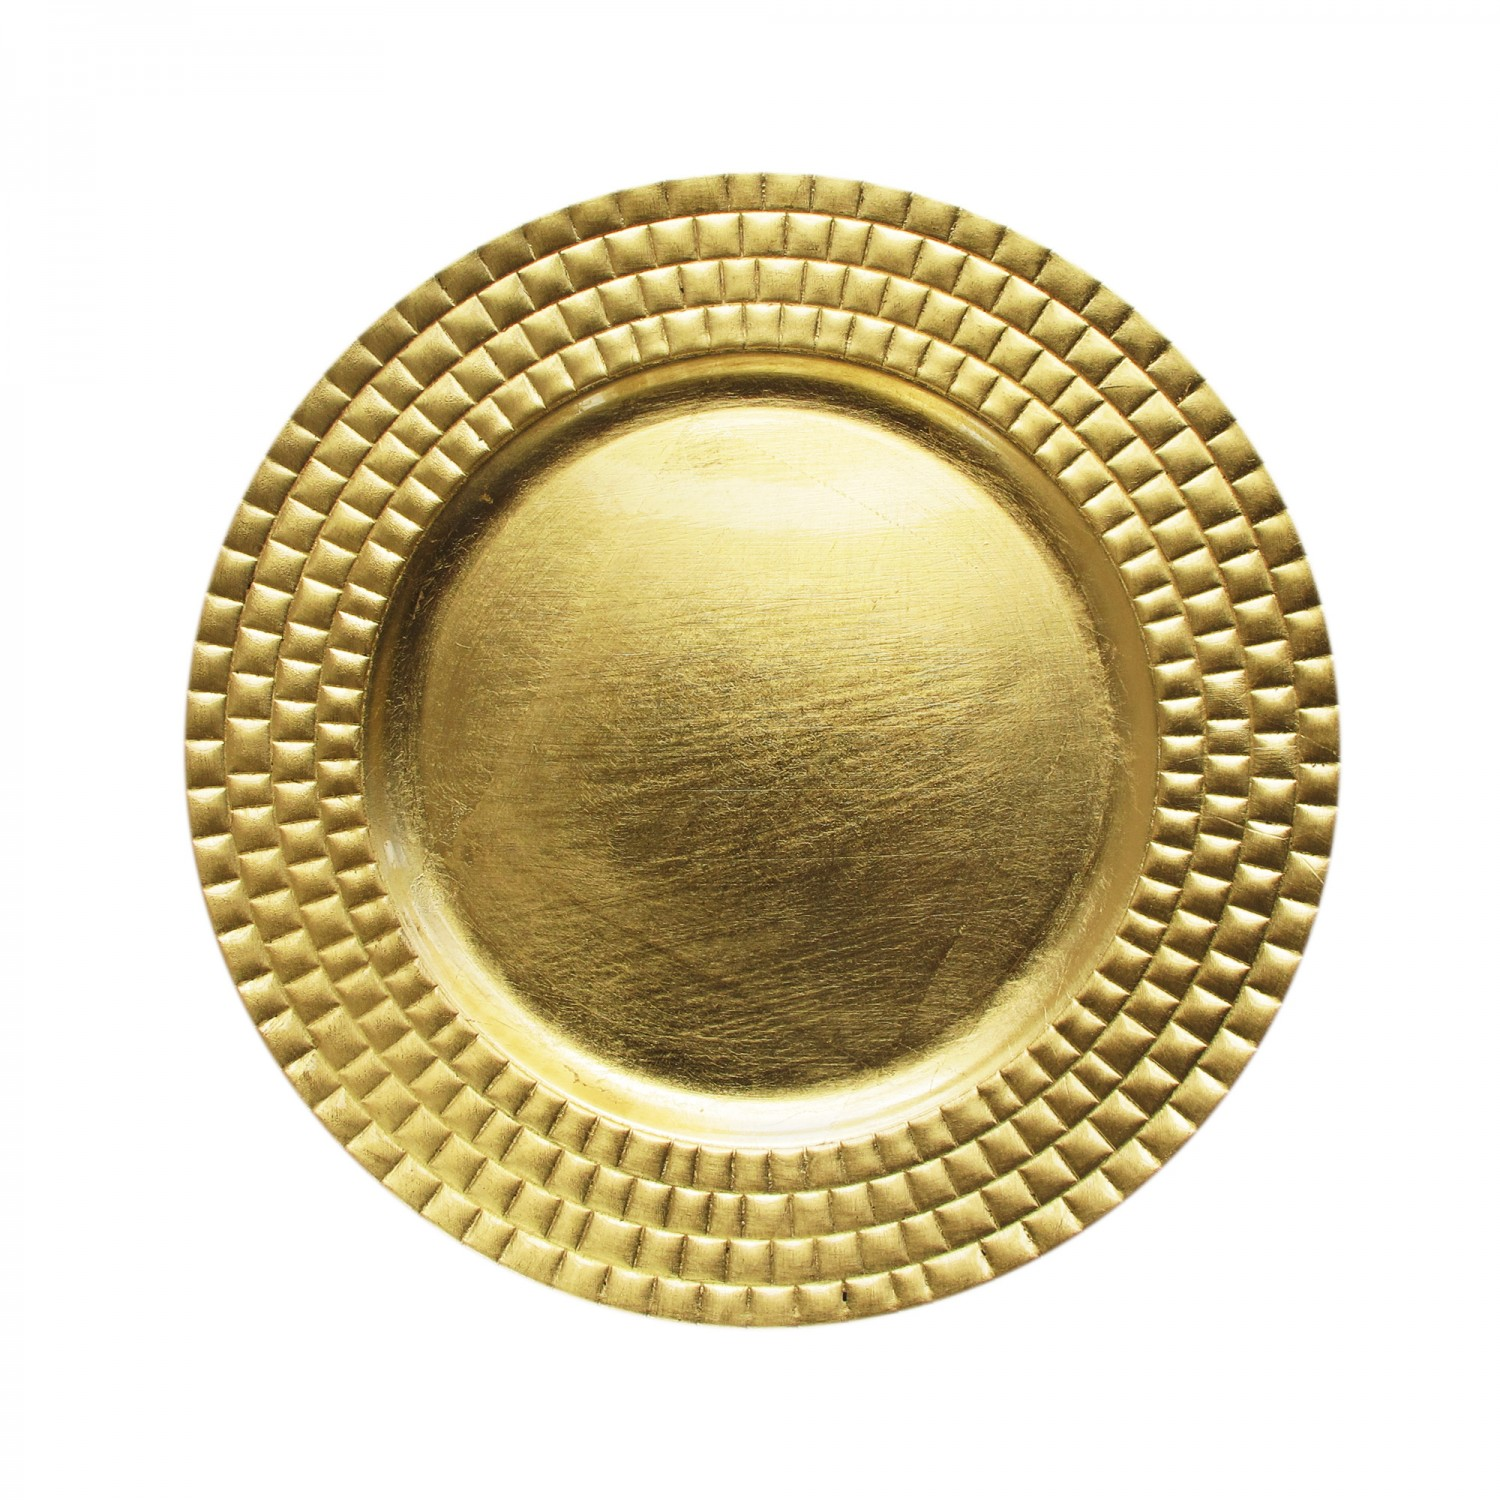 The Jay Companies 1182769 Round Gold Tiled Charger Plate 13""